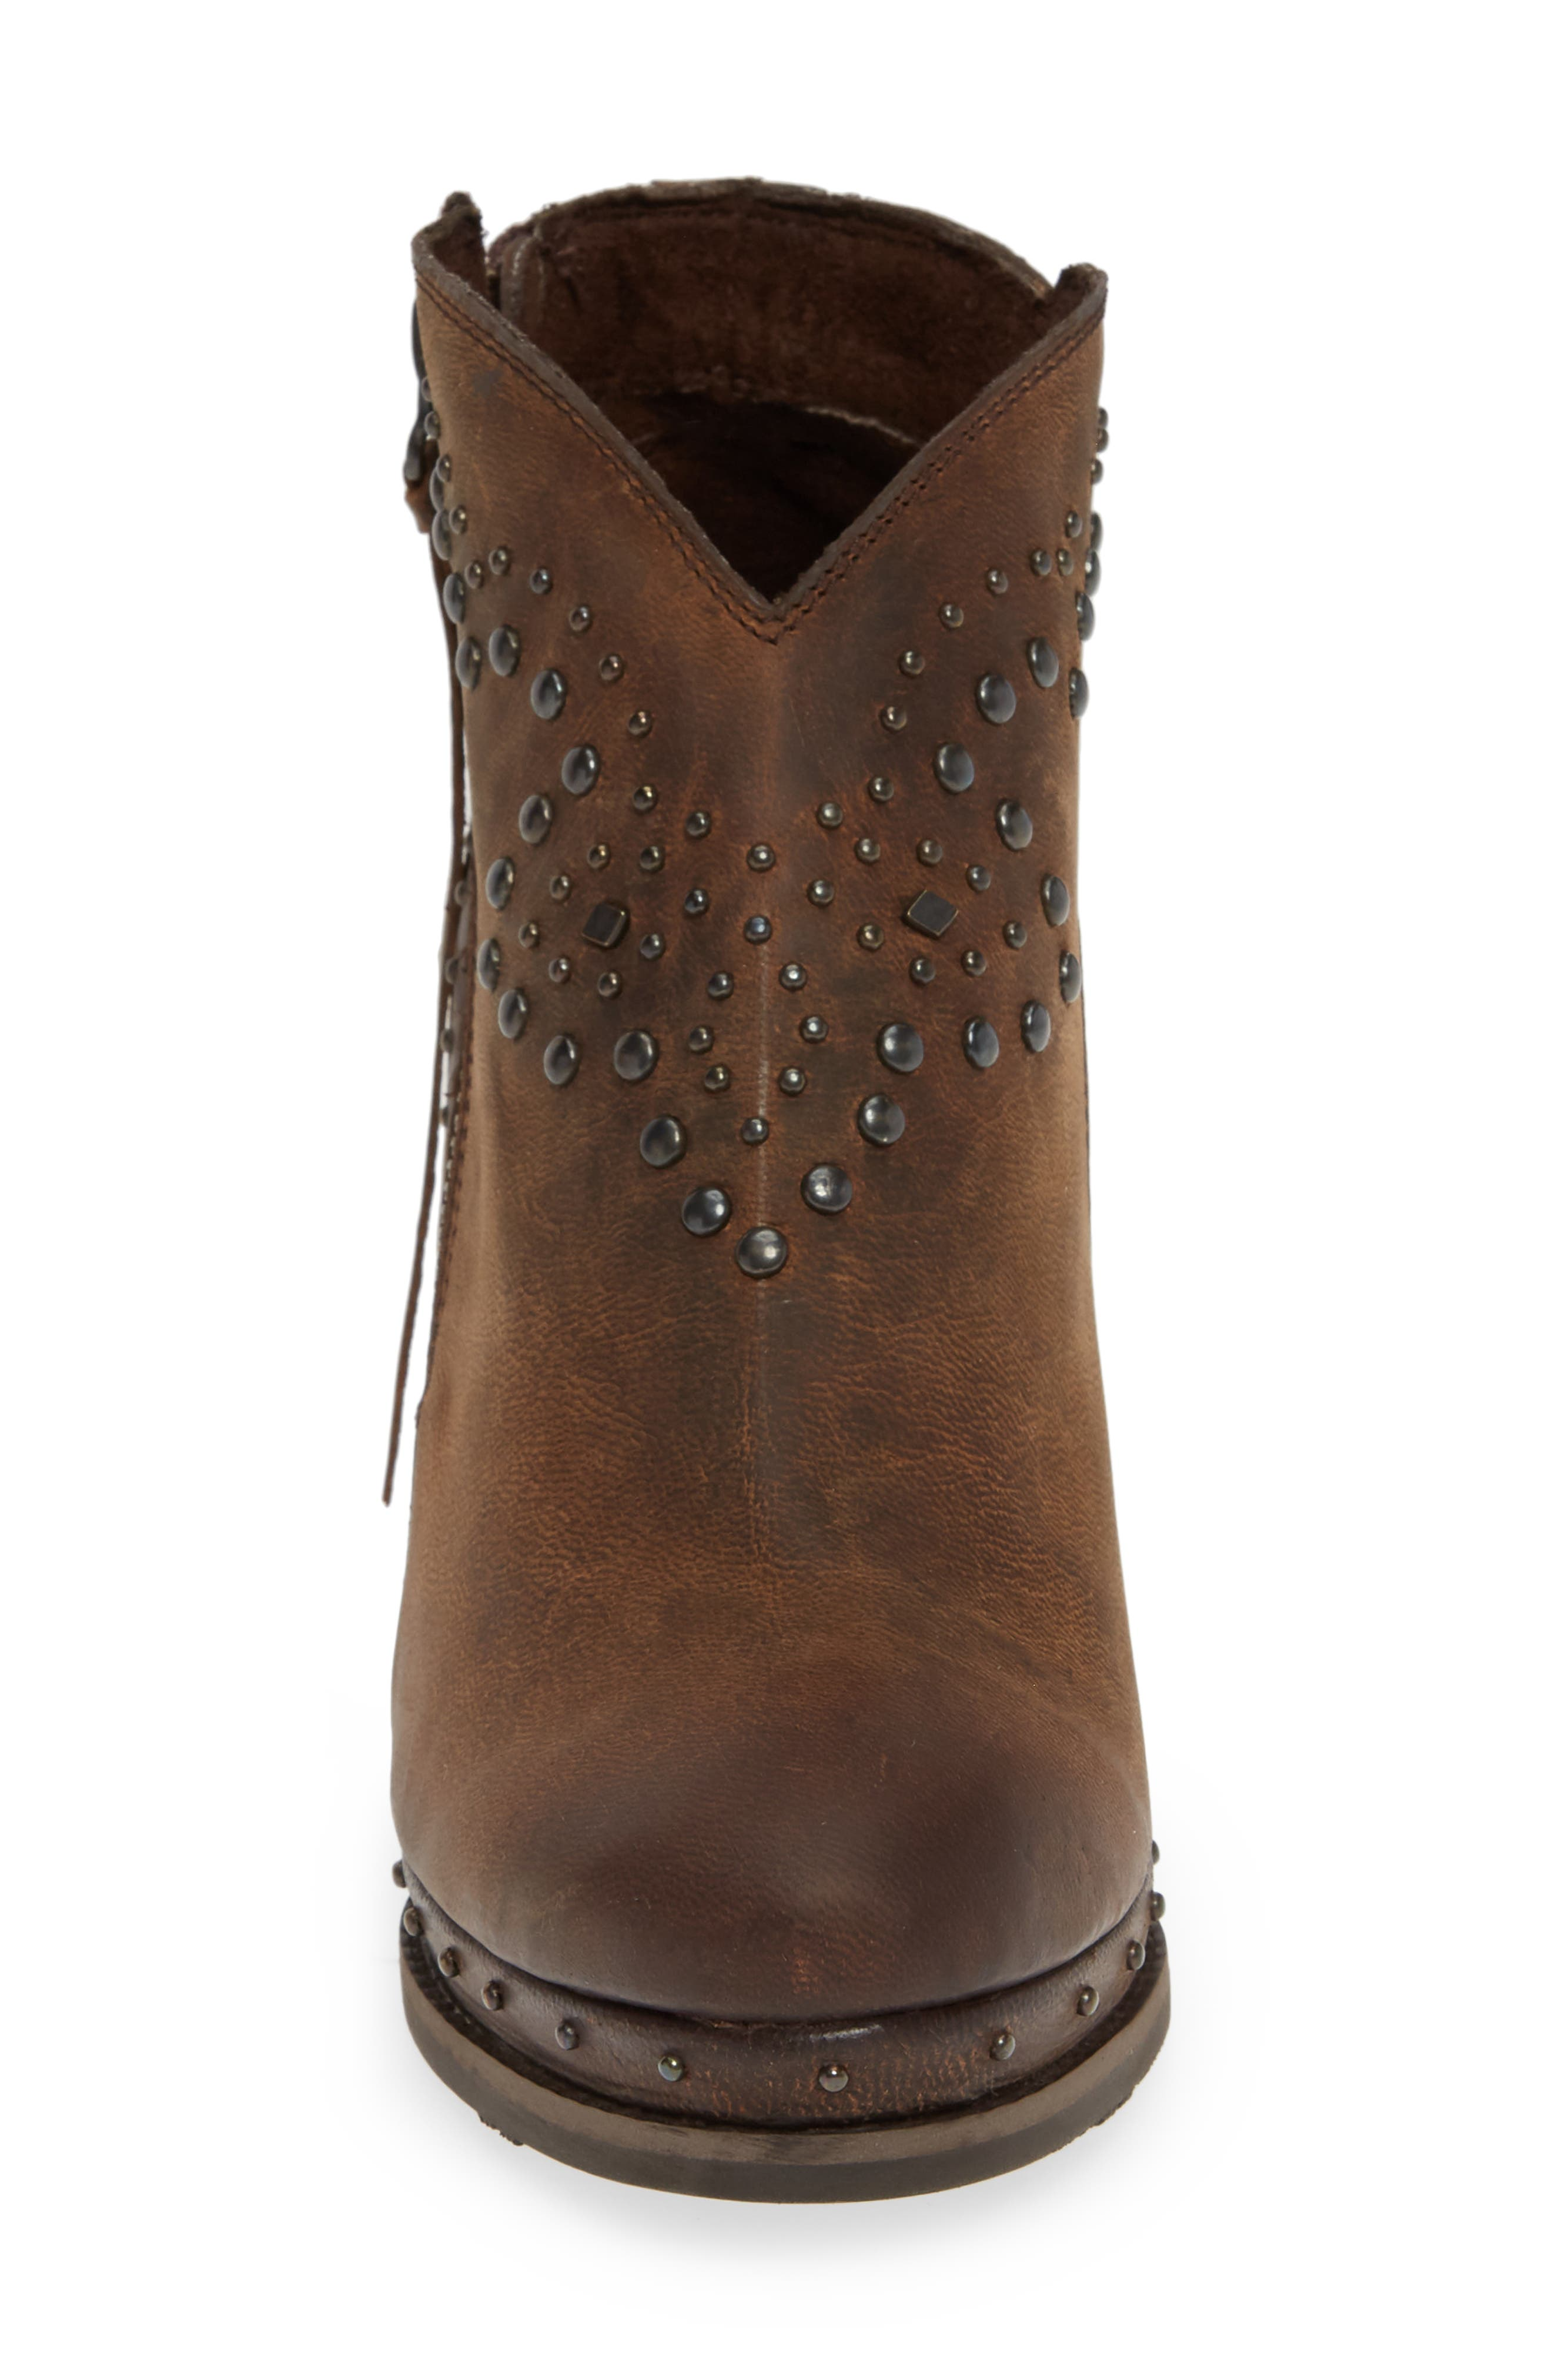 Stax Studded Wedge Bootie,                             Alternate thumbnail 4, color,                             RUSSET DIAMONDBACK TAN LEATHER